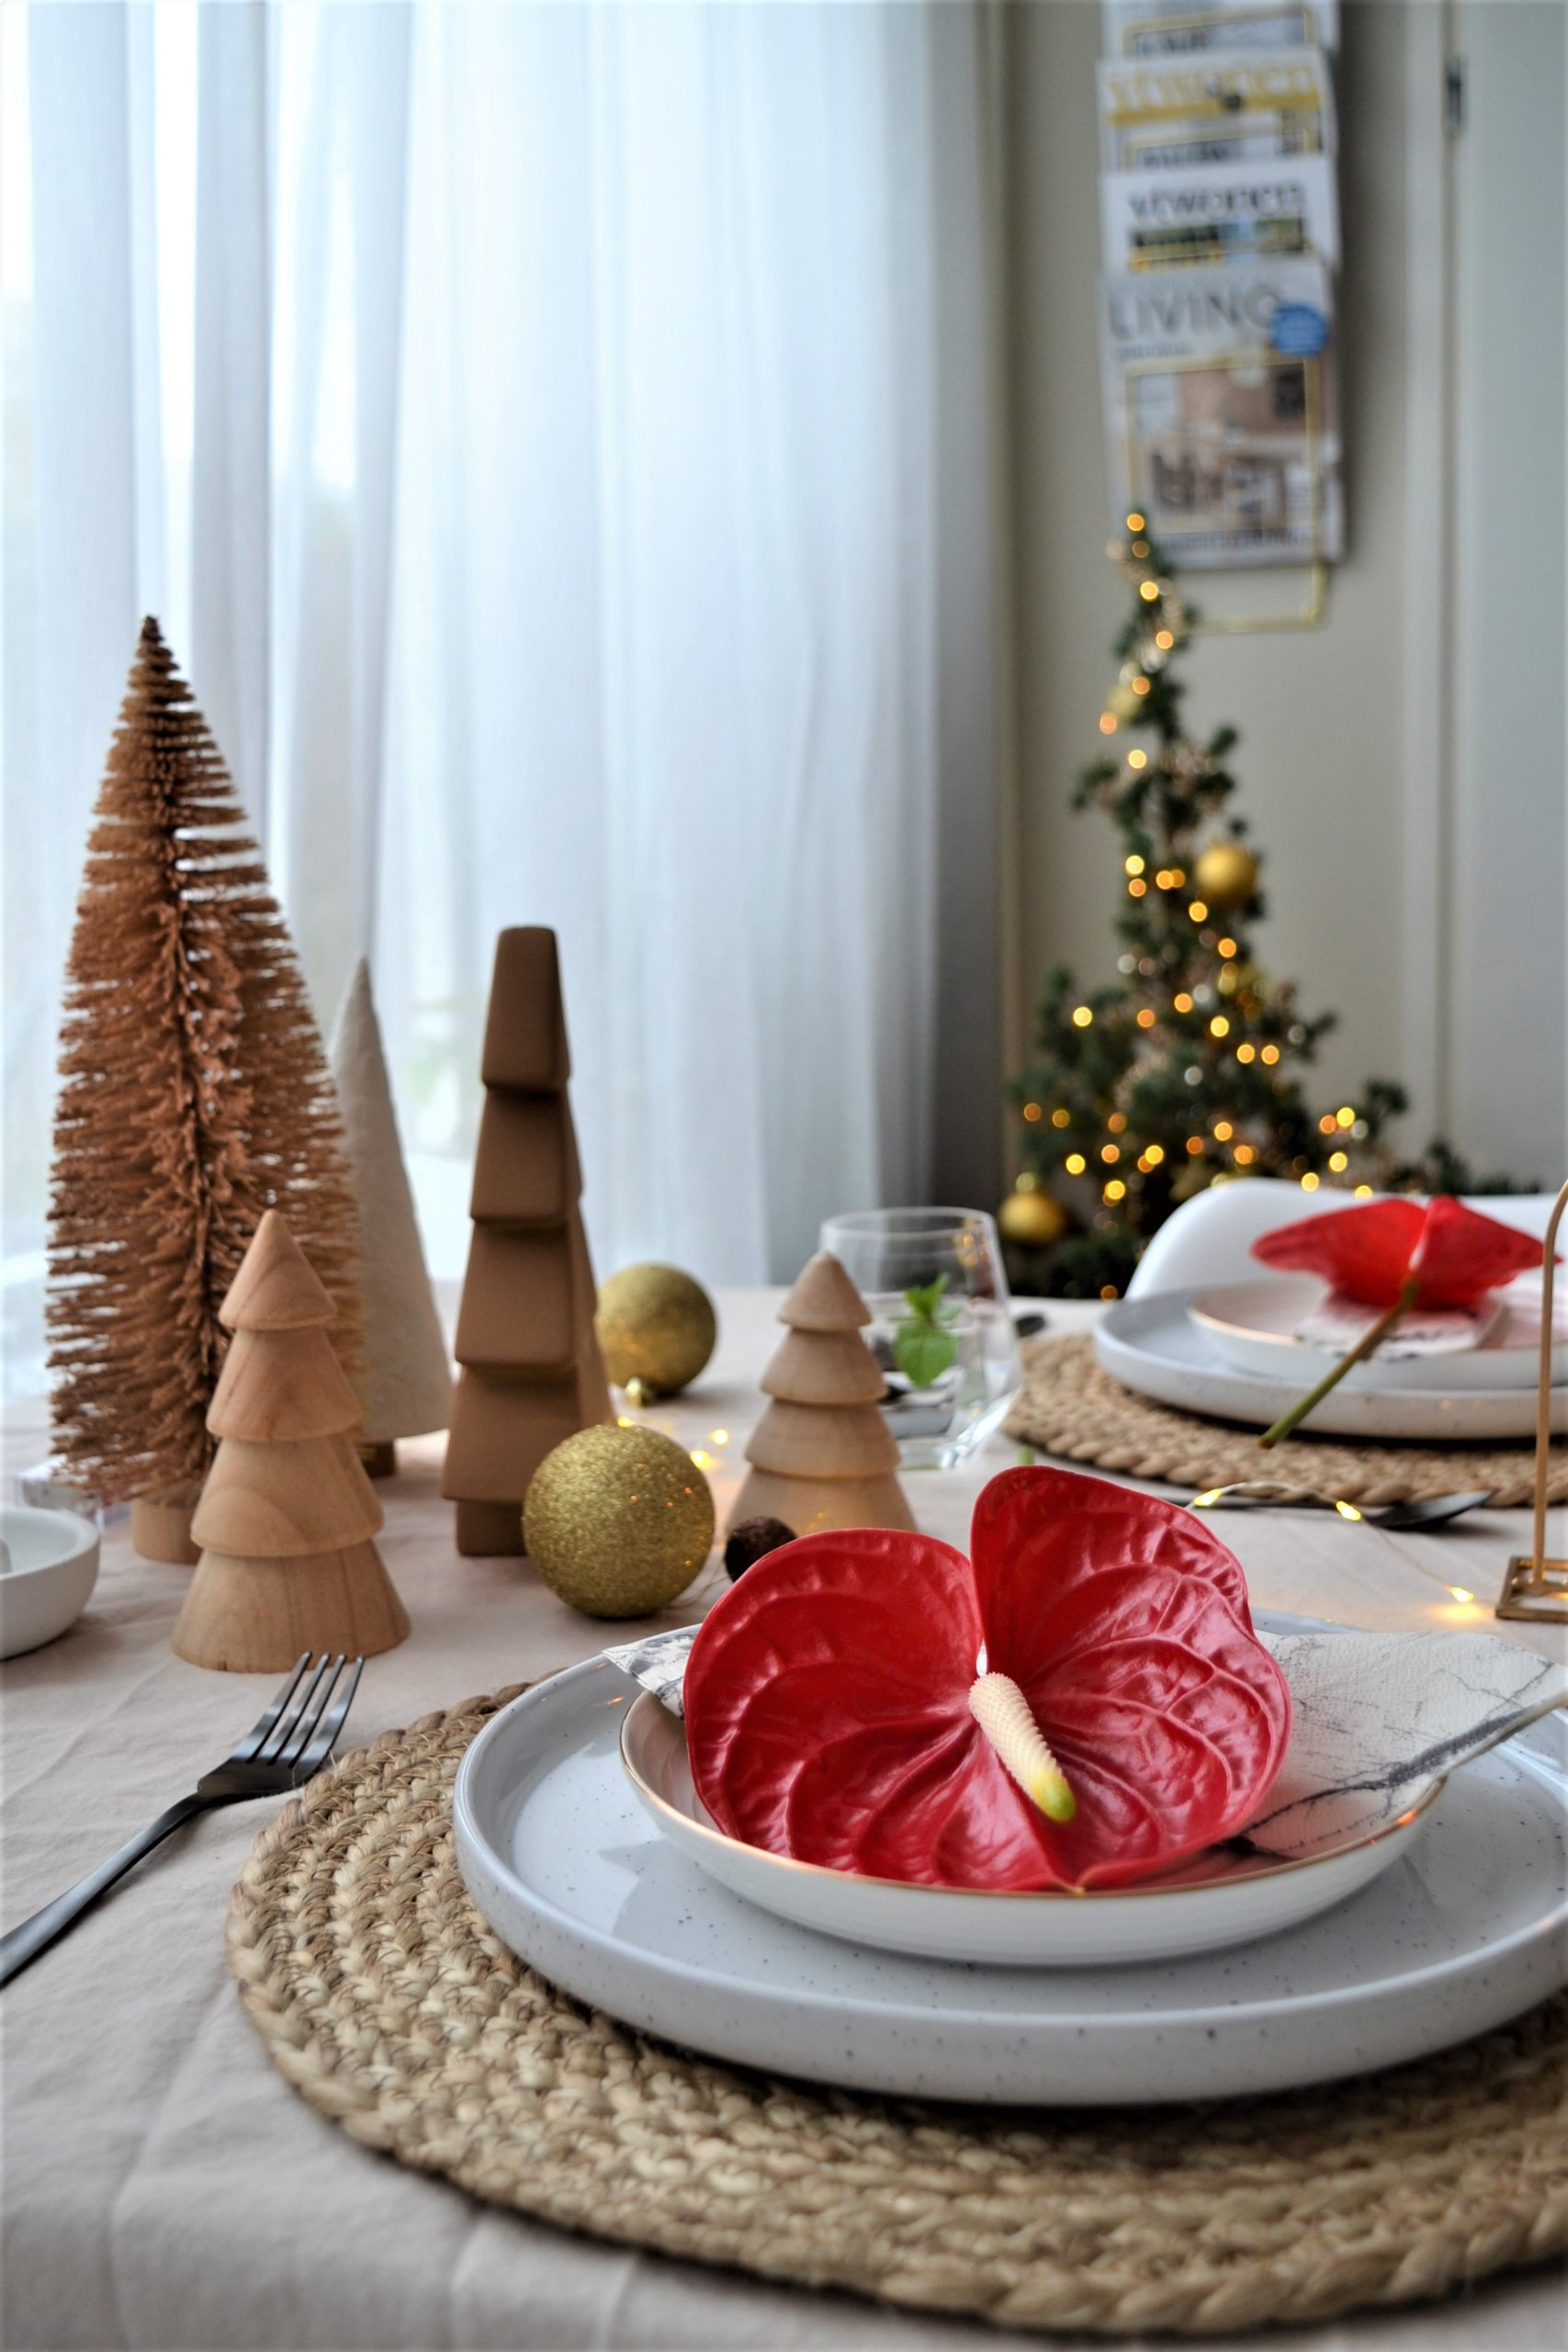 Christmas table setting with red Anthurium flowers